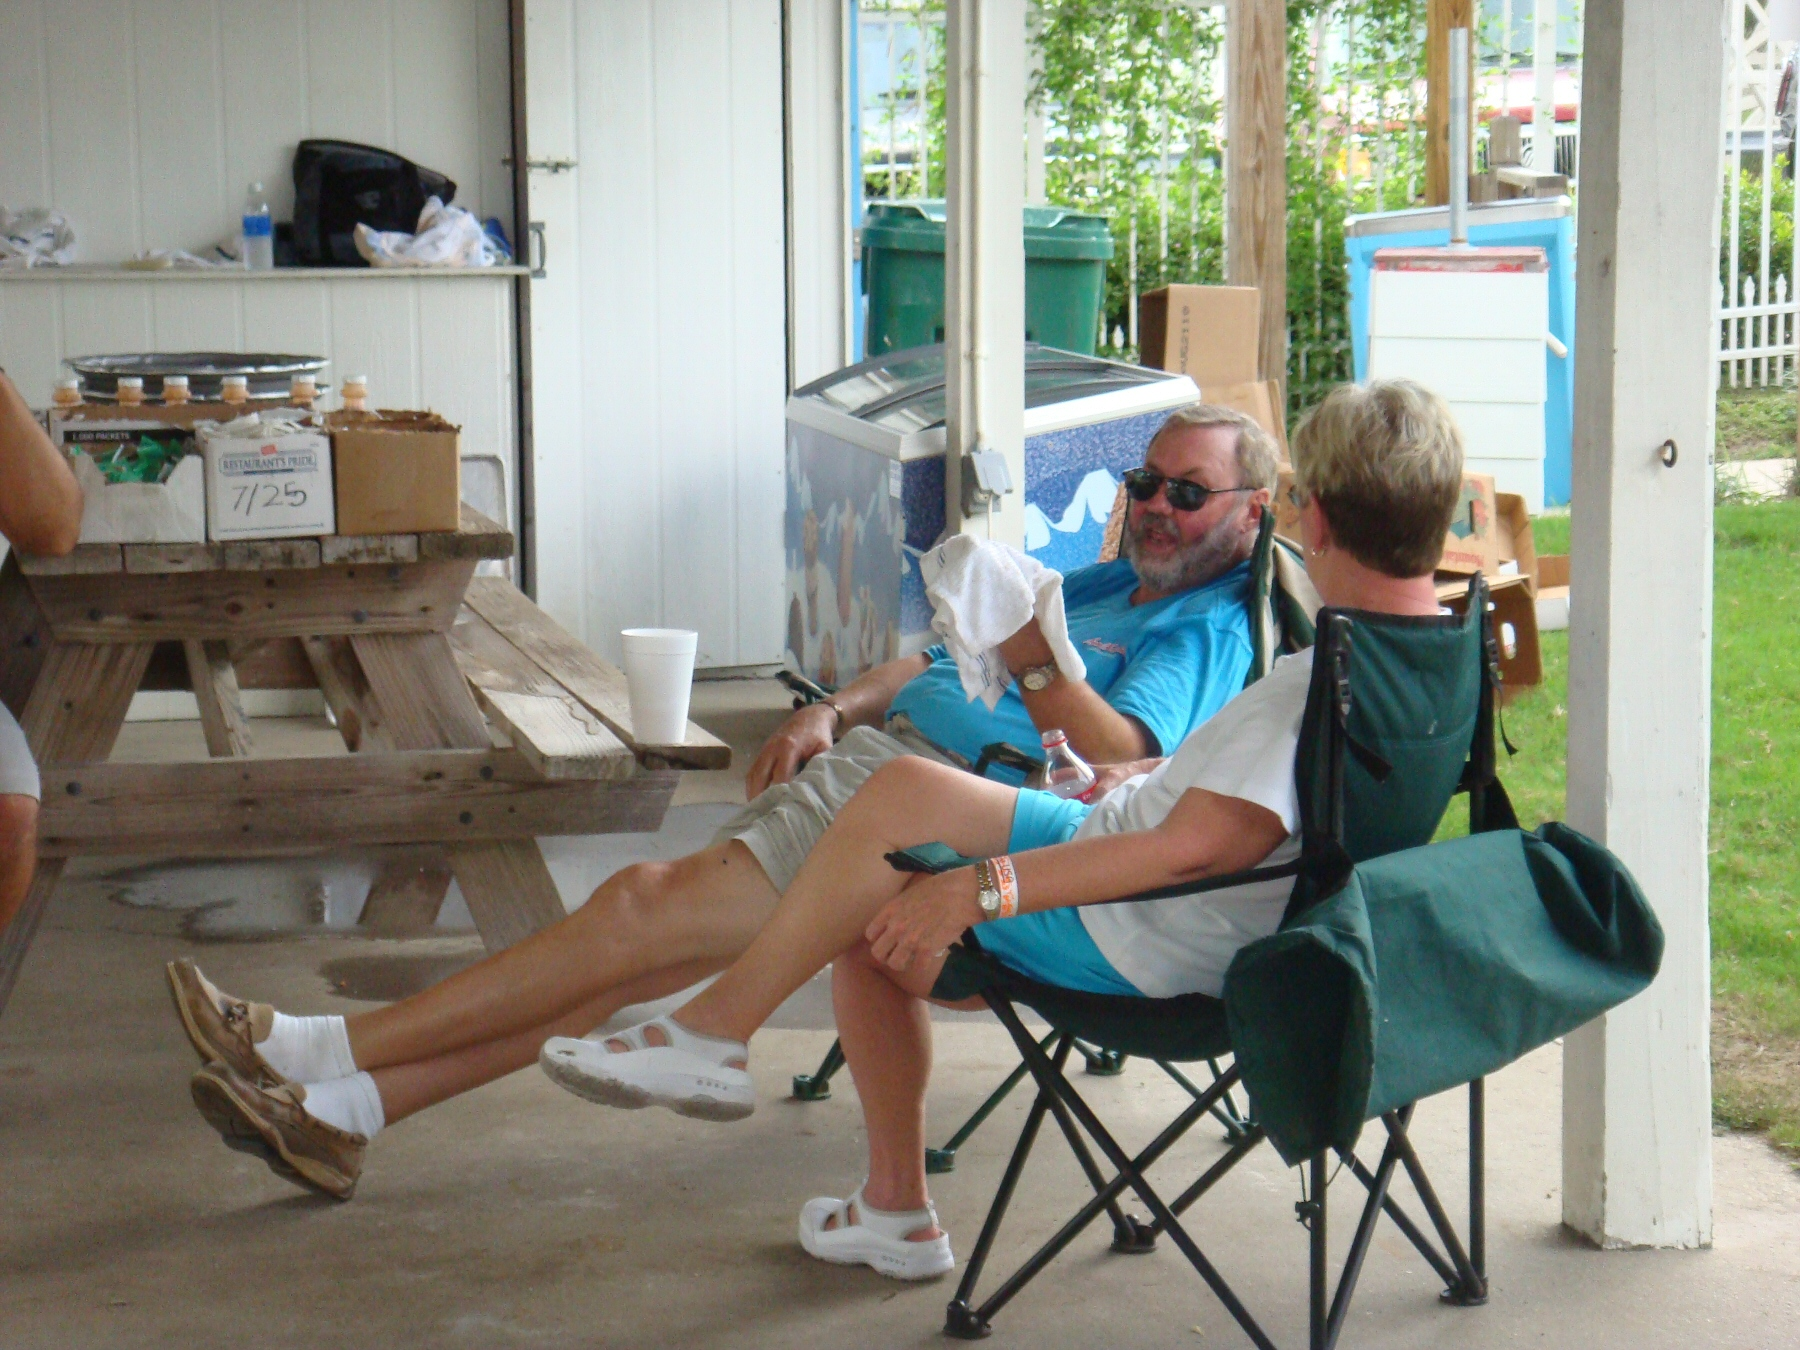 man and woman sitting in folding chairs